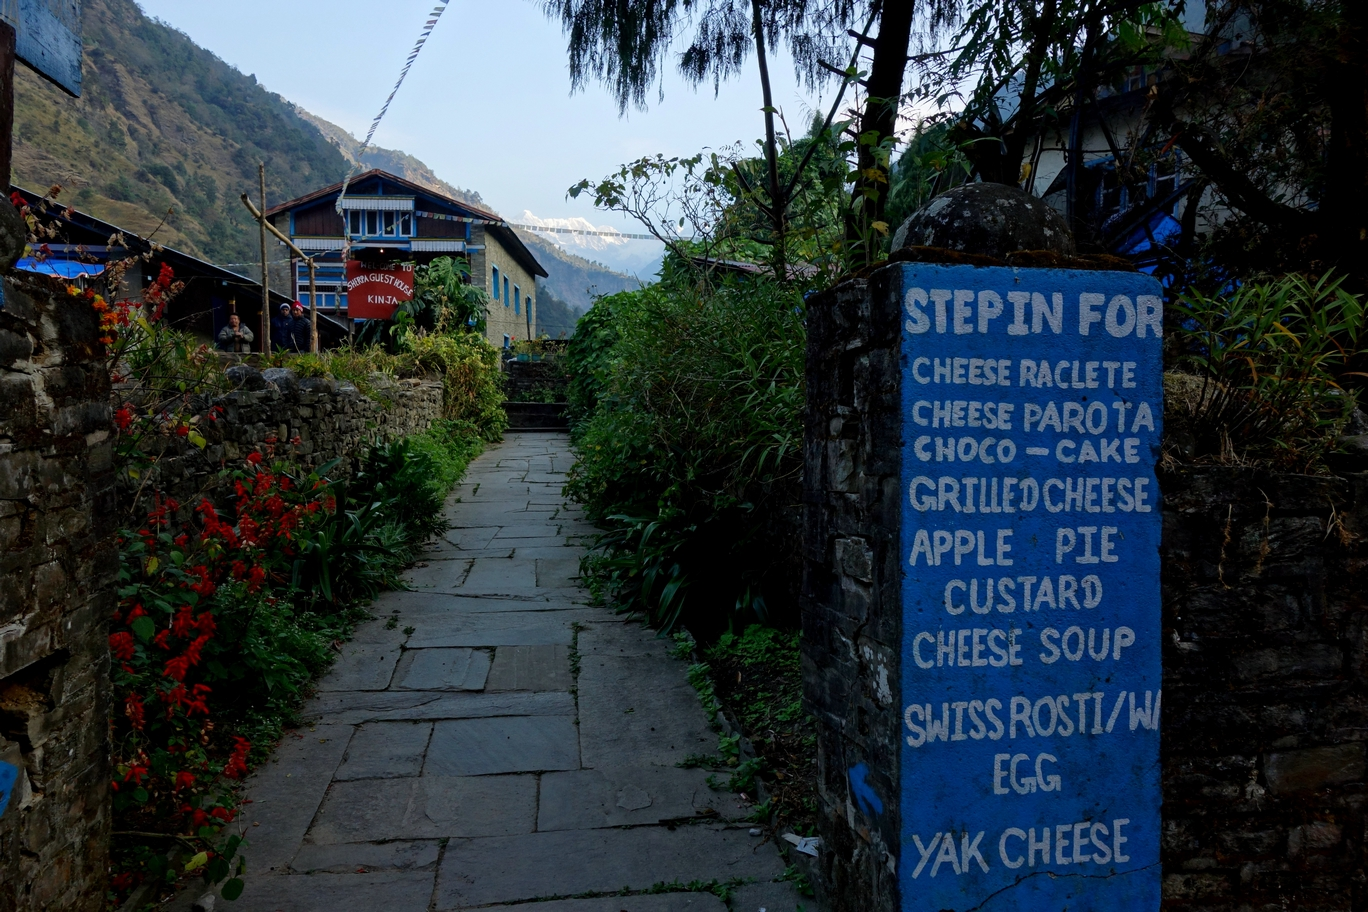 The hotel that called to me in Kinja – you can see why.